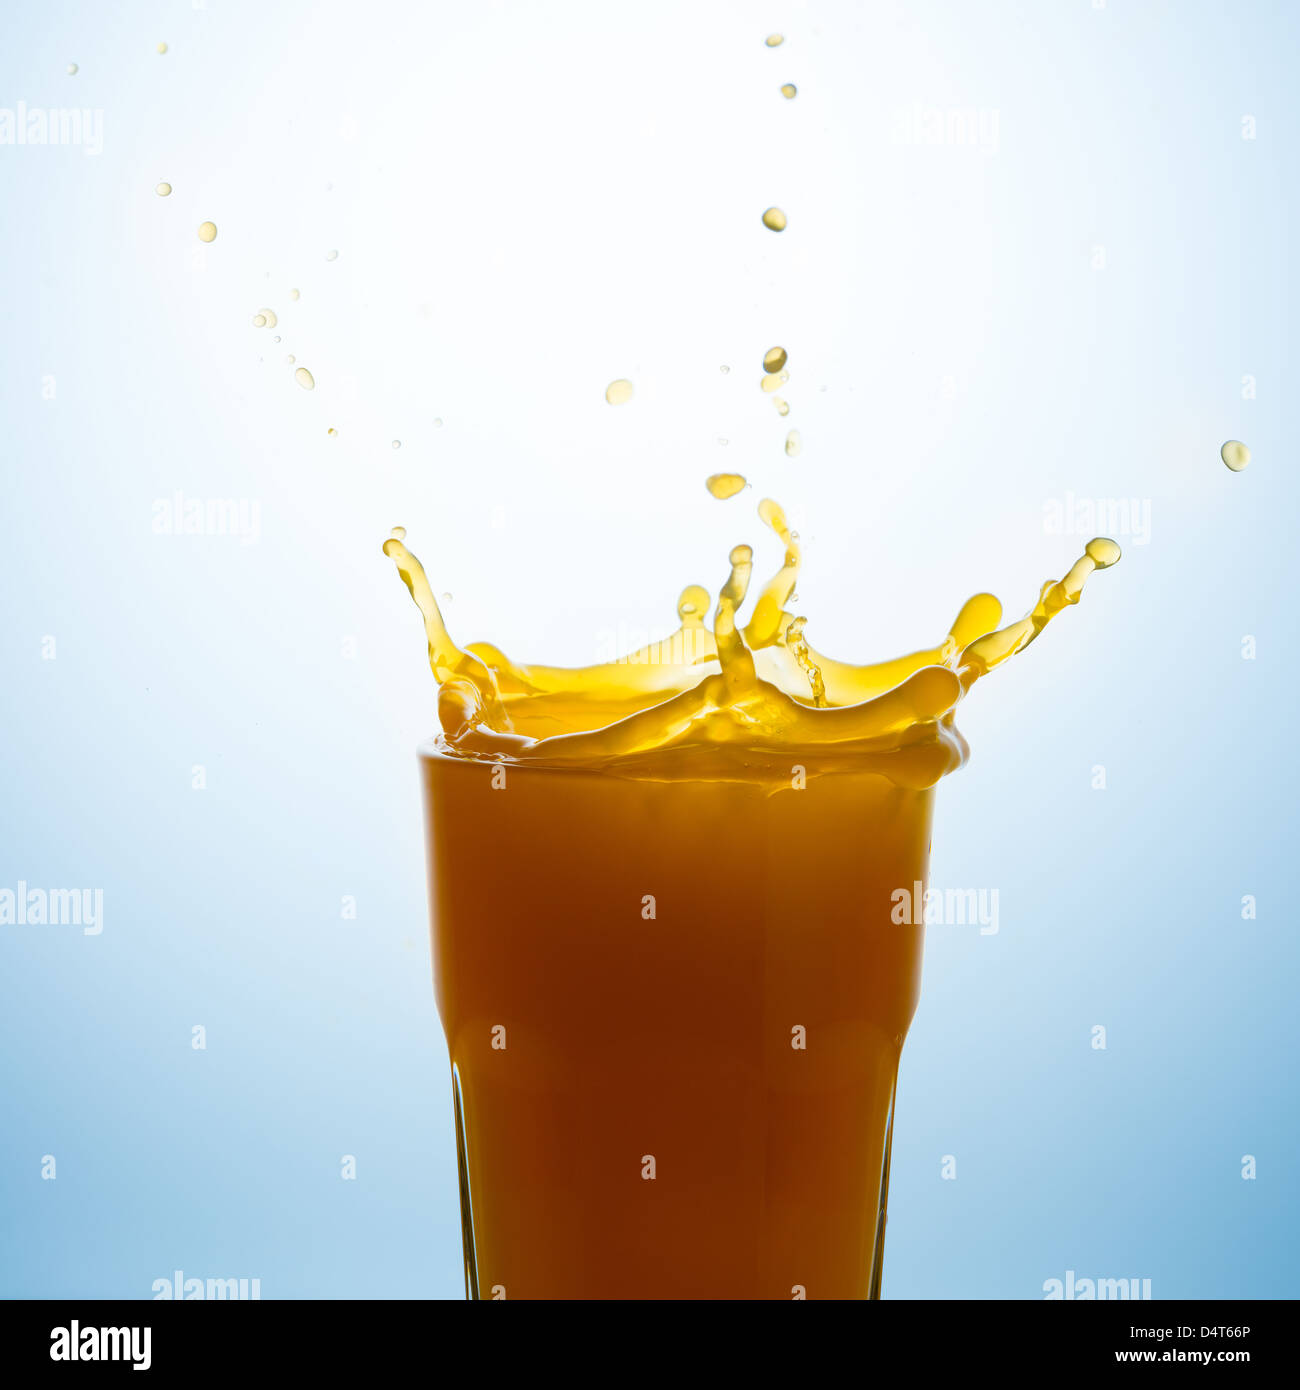 Splash on a glass of orange juice against a blue background - Stock Image